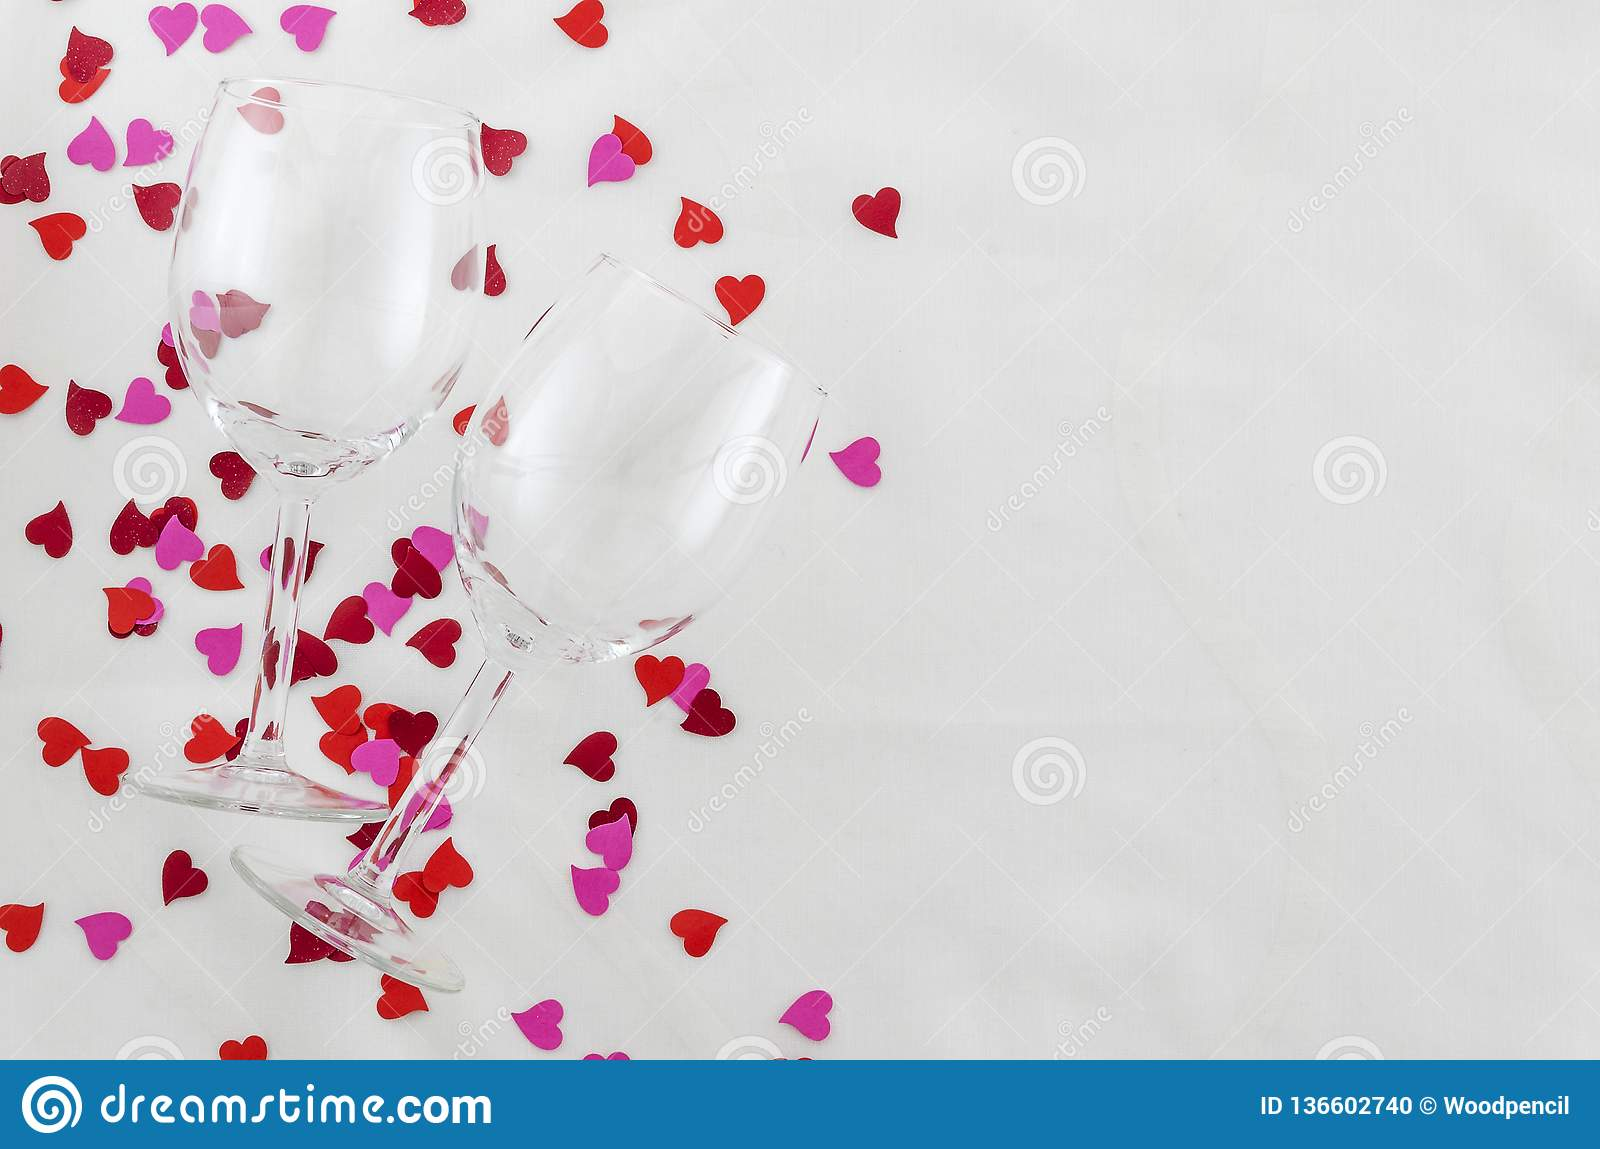 Festive background for Valentine`s day, couple of glasses, white background with hearts, top view